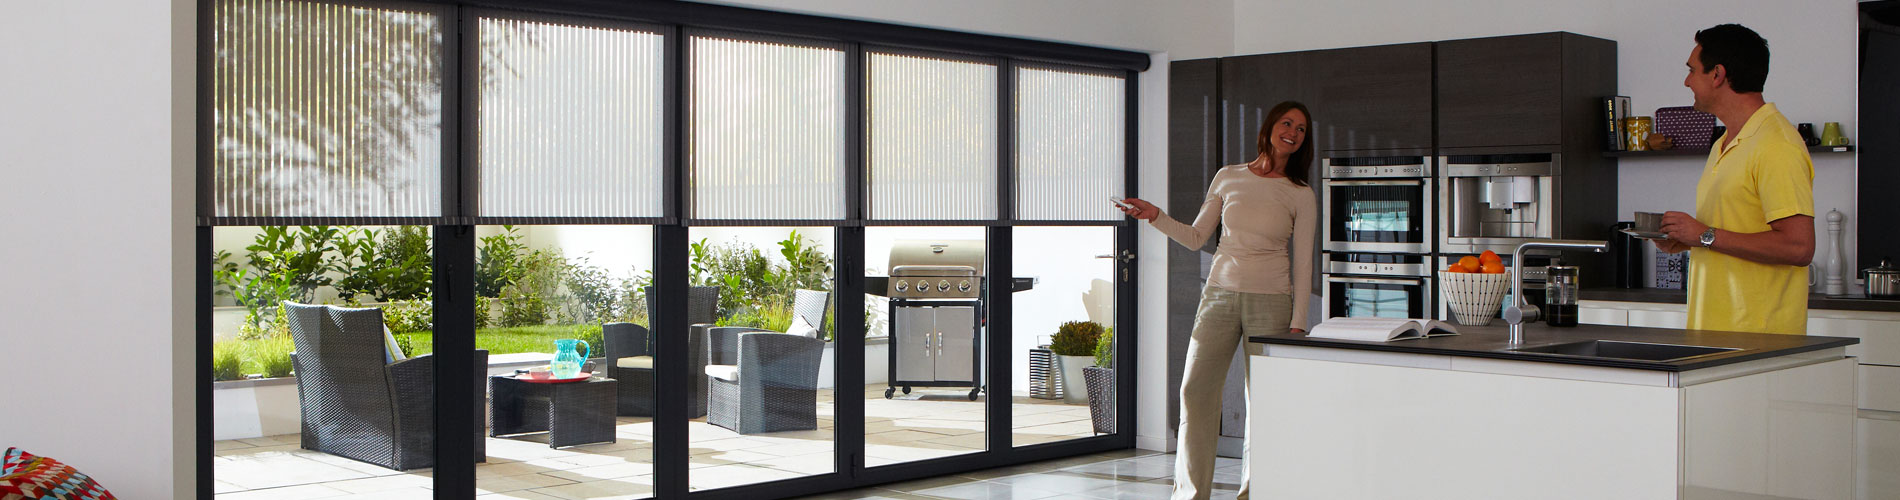 bifold_doors_hero1.jpg